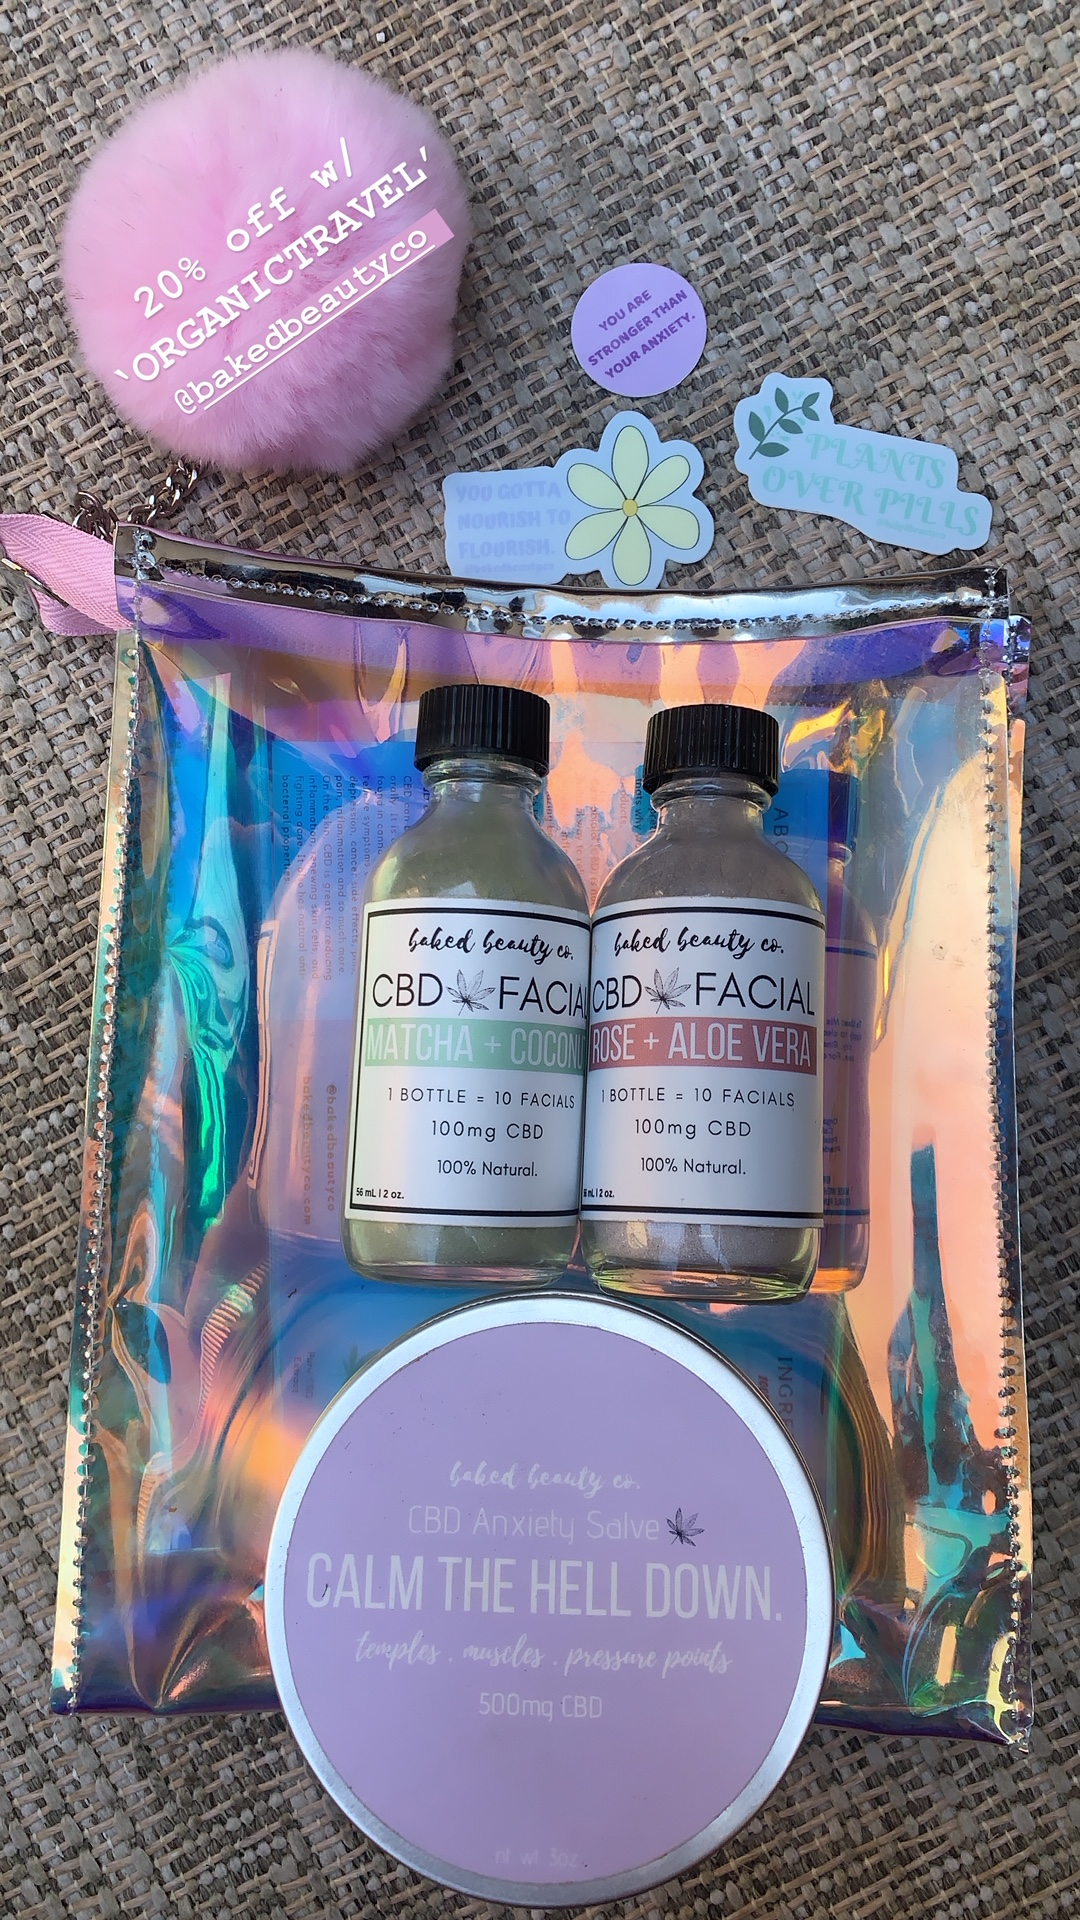 coupon code for baked beauty company